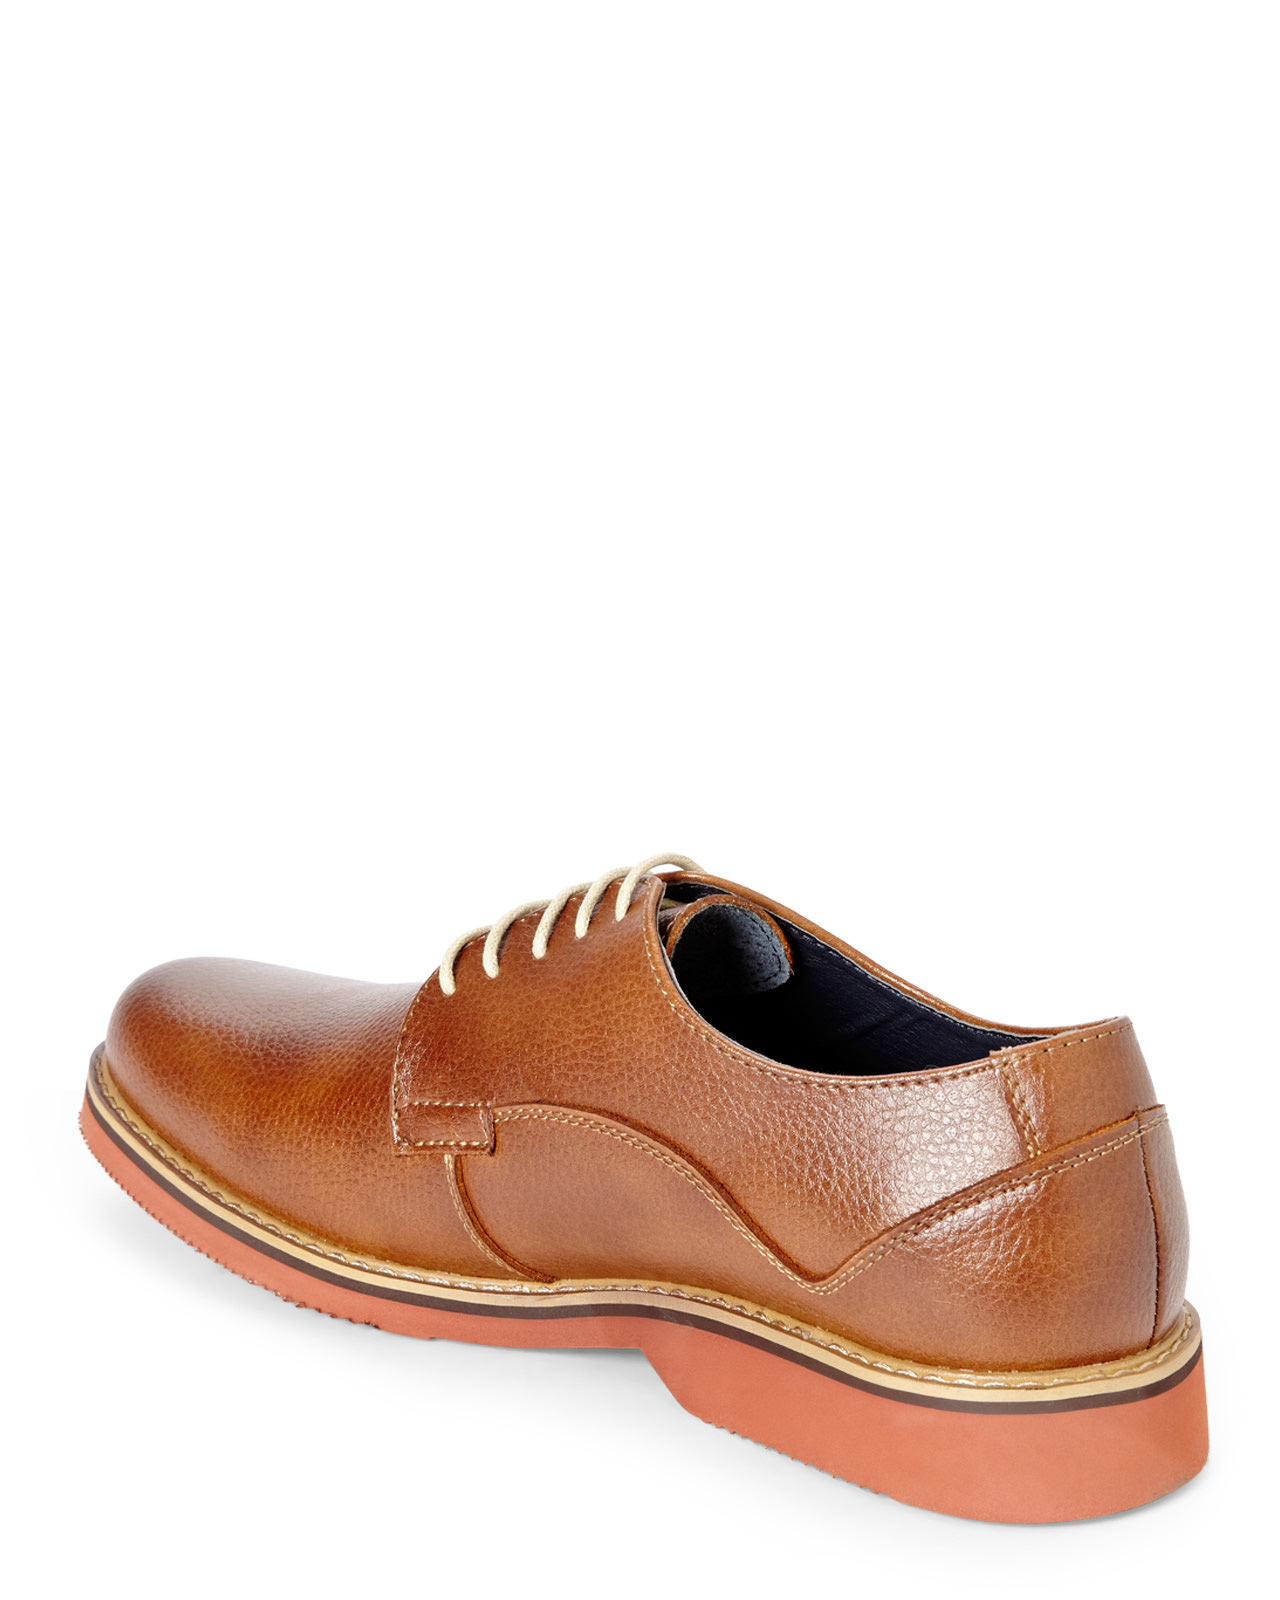 Lyst Joseph Abboud Cognac Joshua Oxfords In Brown For Men